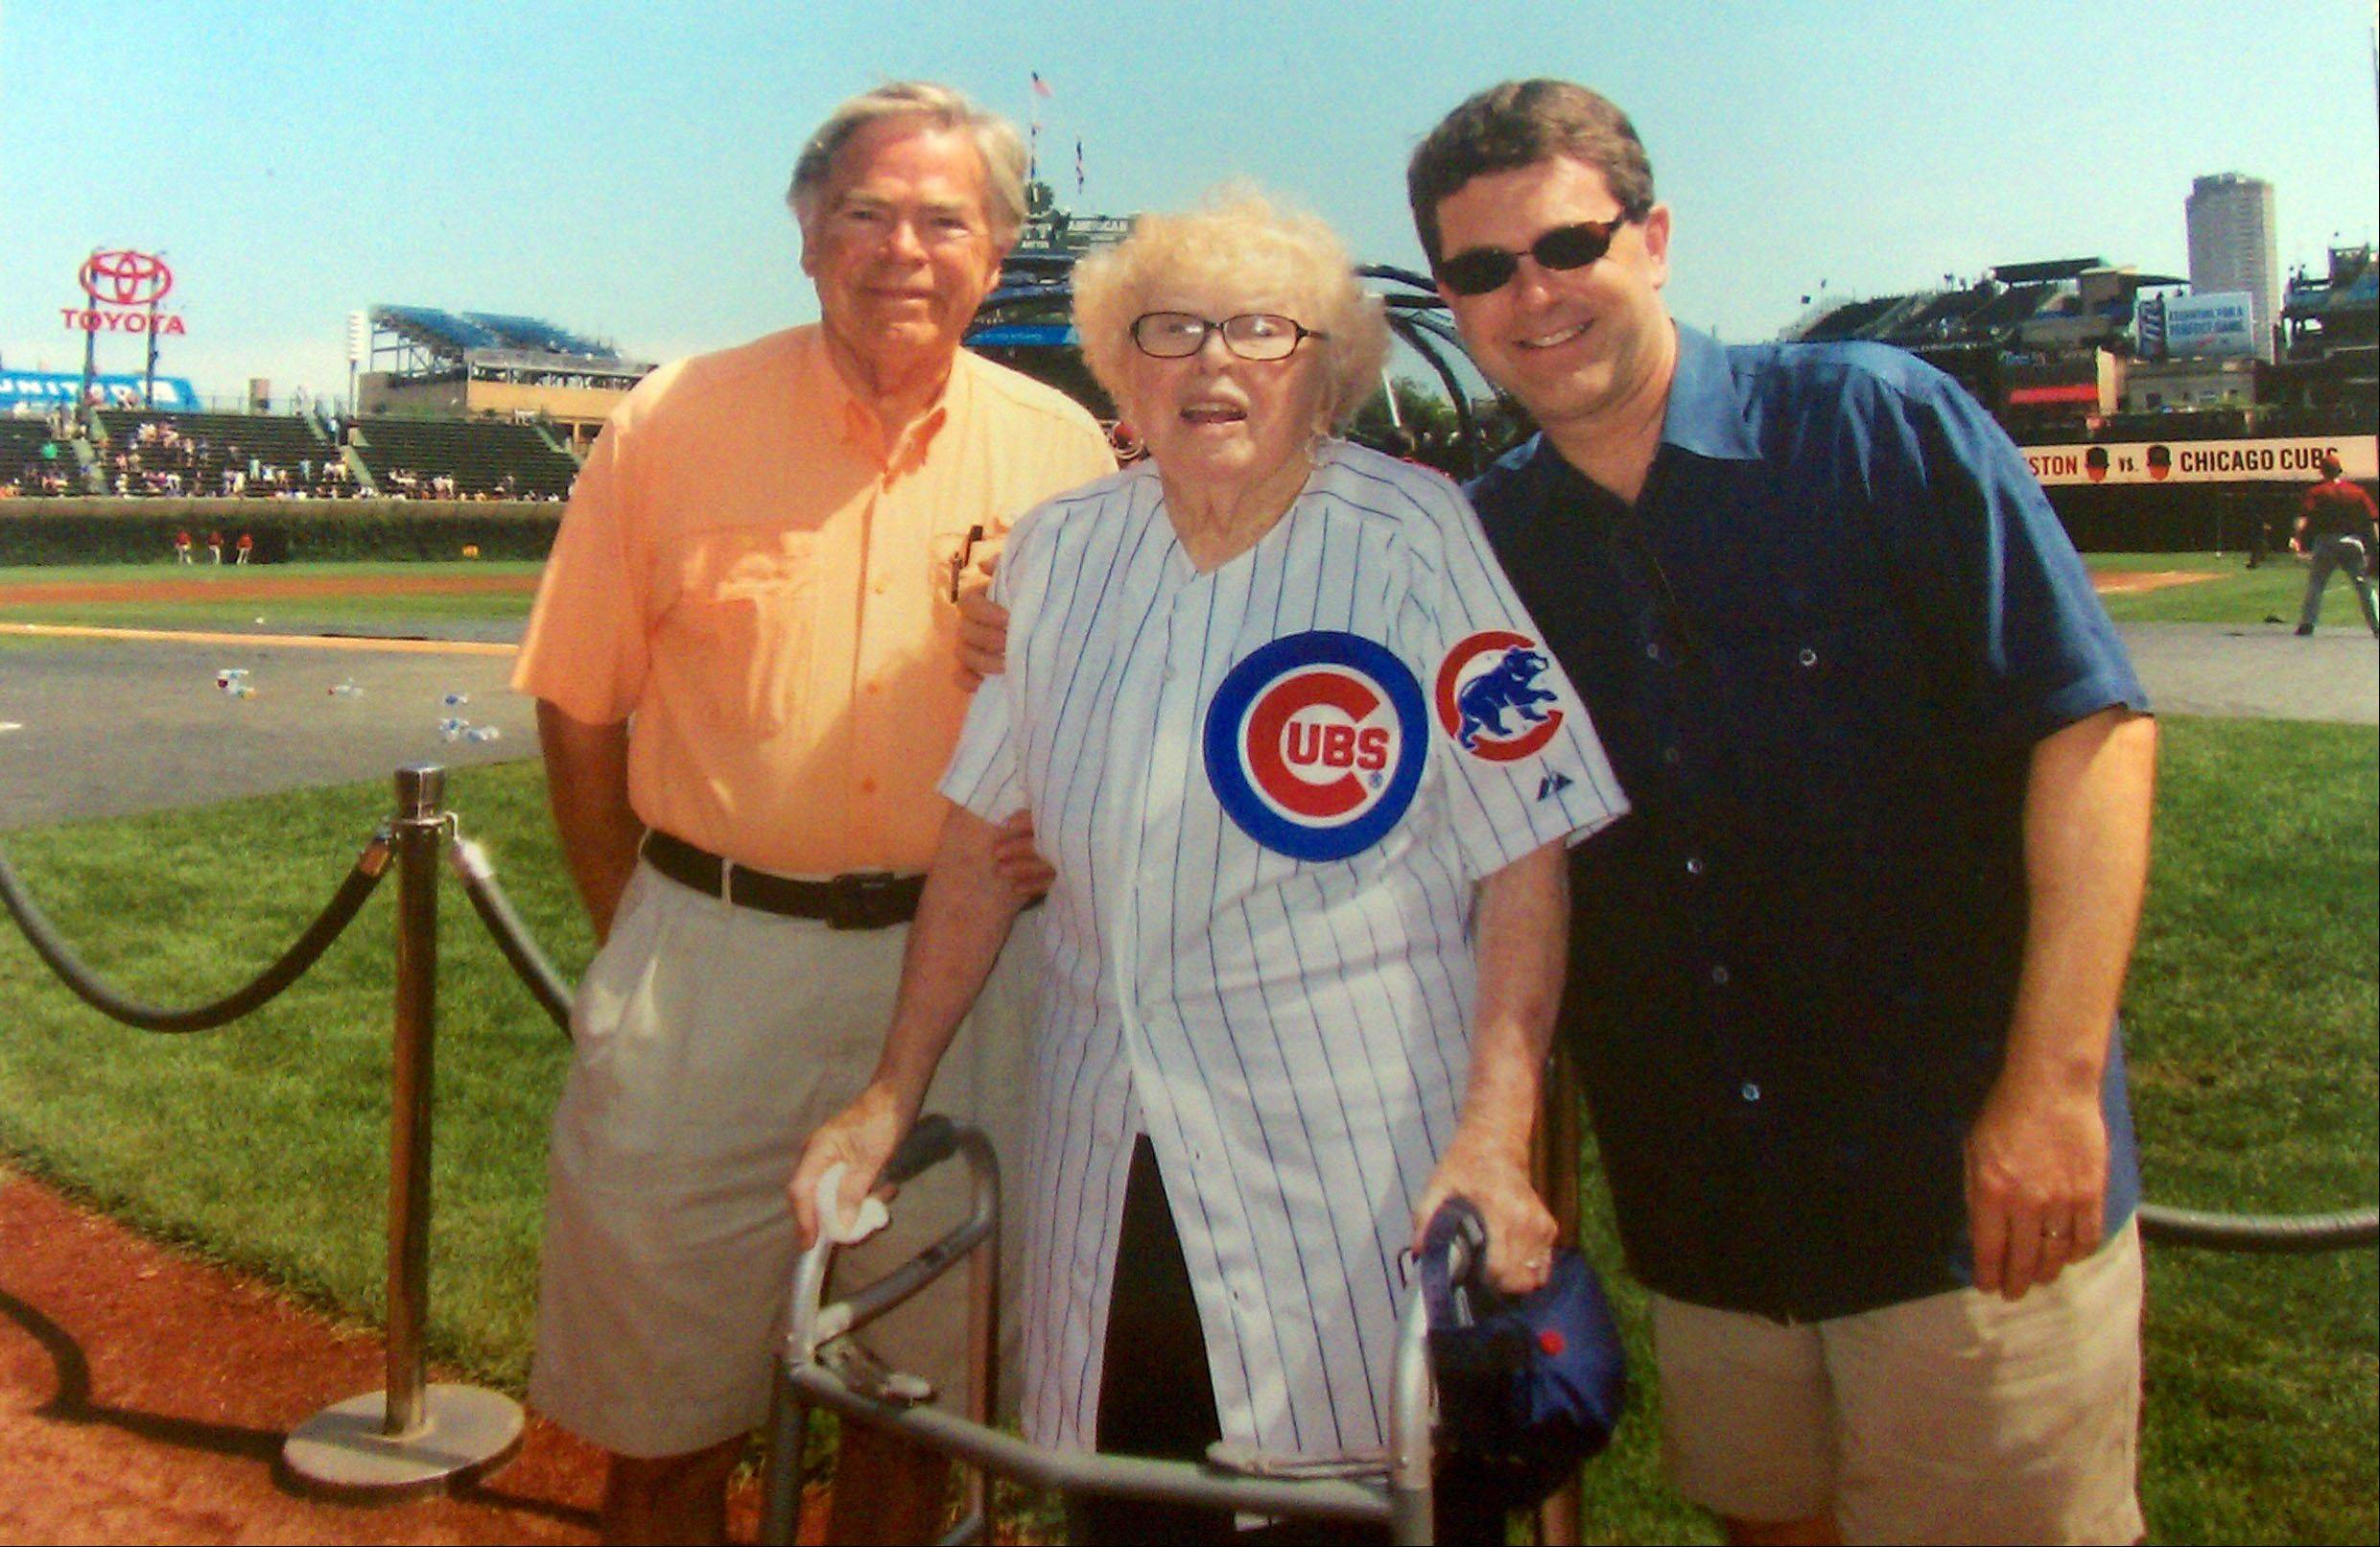 Alice Lundstrom spent her 106th birthday at Wrigley Field with her son, Carl, and her grandson, Brett. The Cubs gave her the special jersey she's wearing. It has her name and the number 106 on the back.